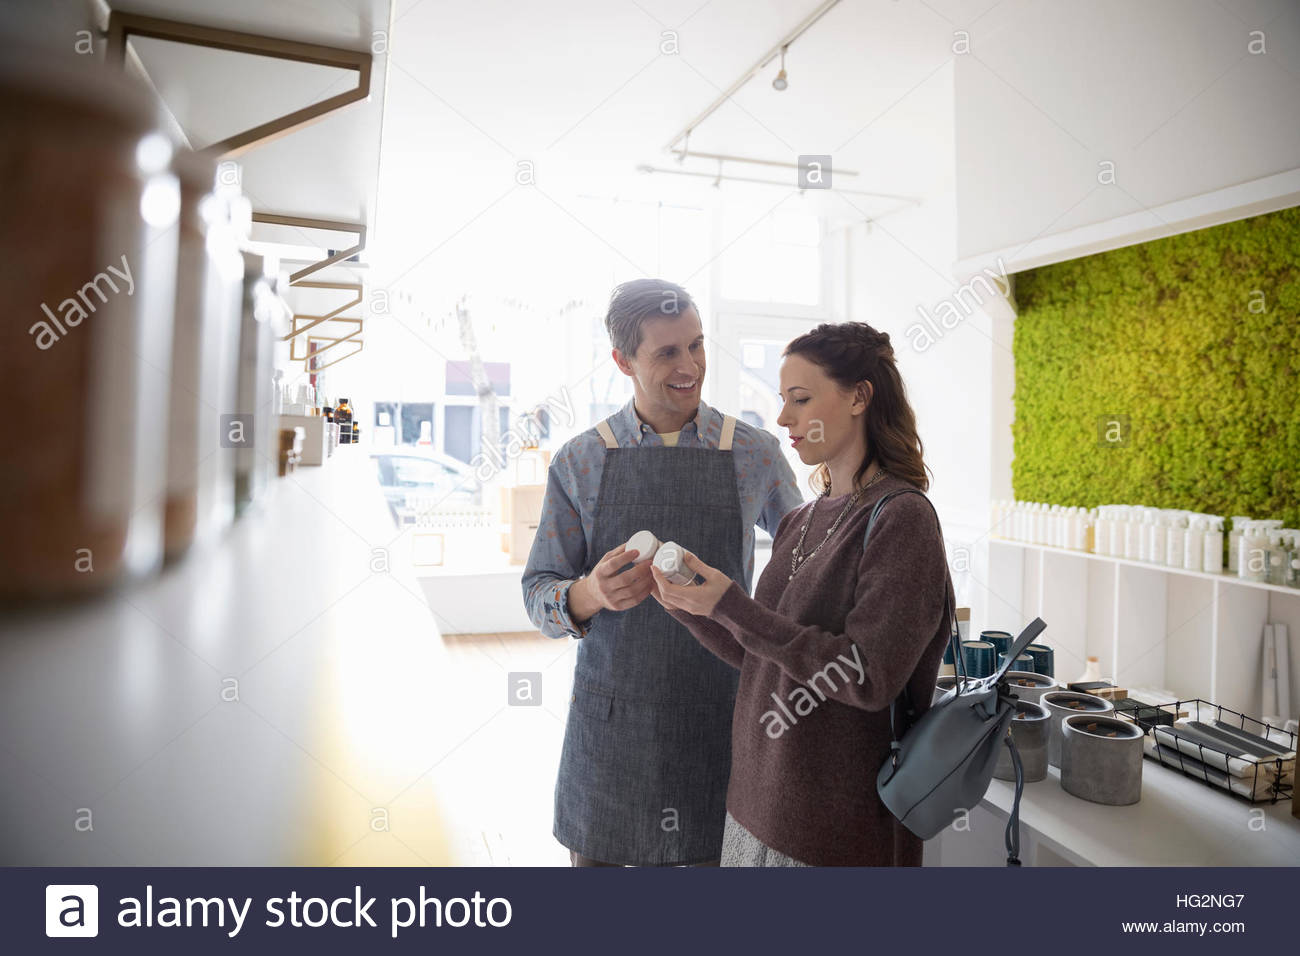 Male shop owner helping female customer shopping in home fragrances shop Stock Photo